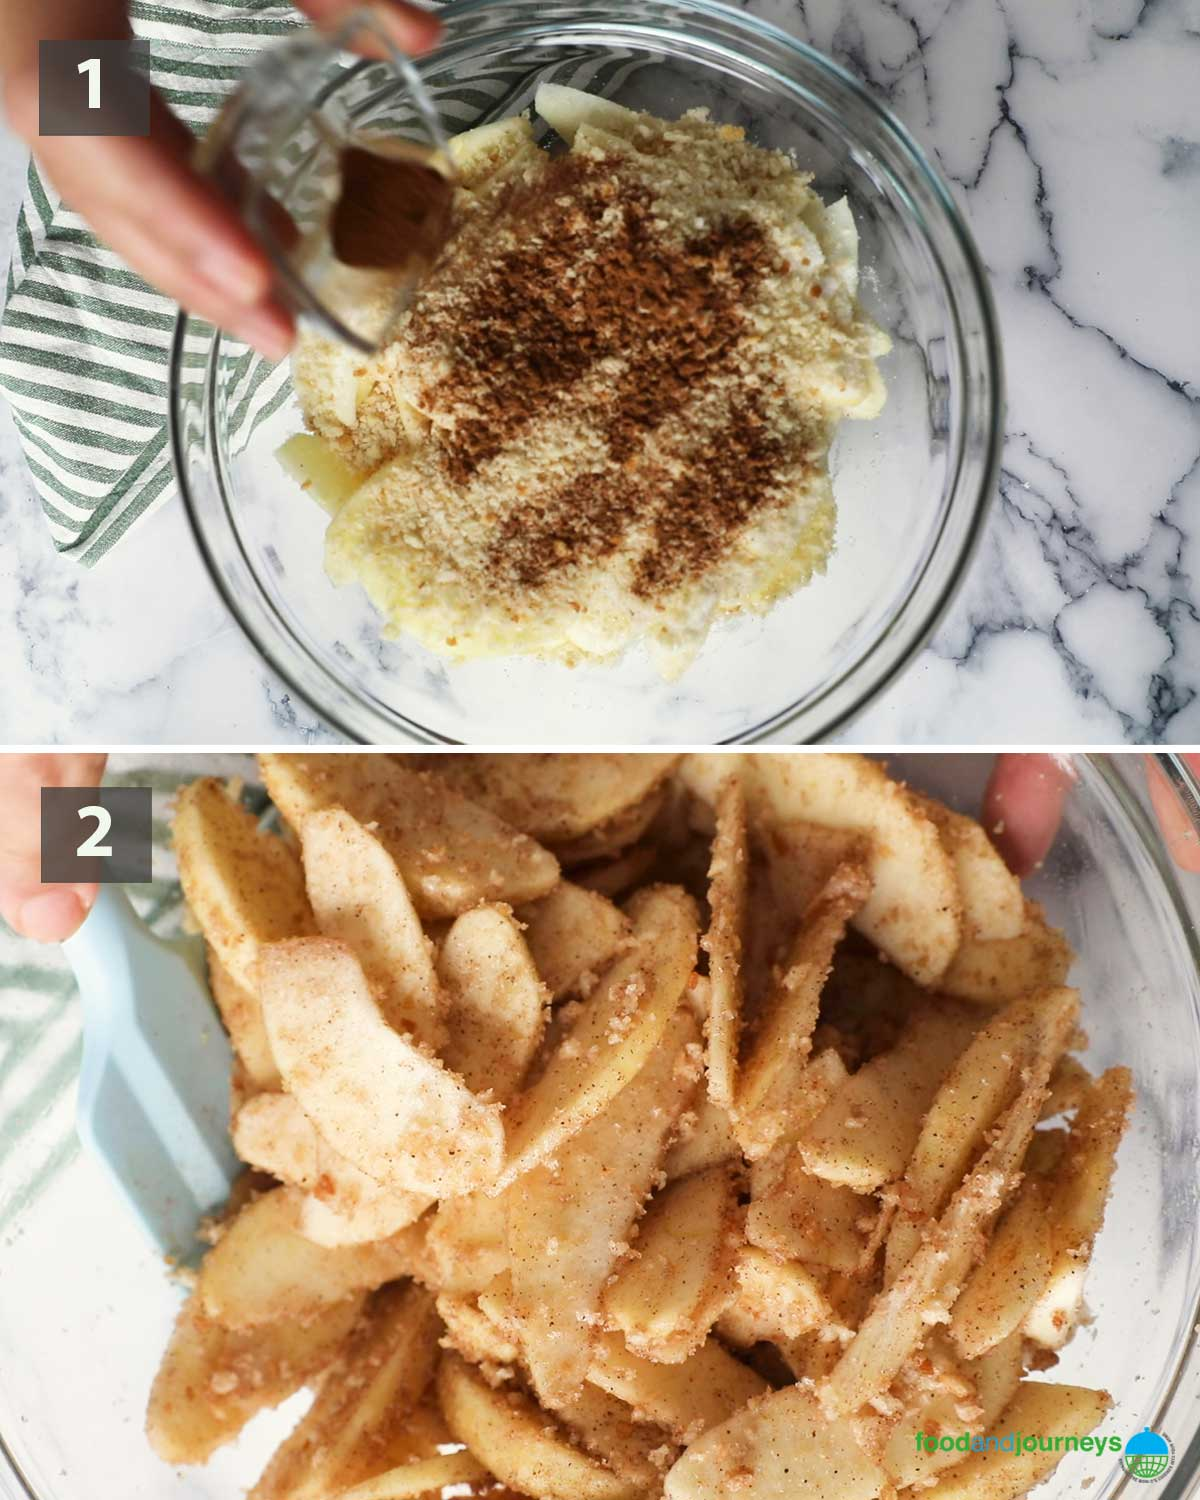 First part of a collage of images showing the step by step process on how to make this Easy Apple Crumble.